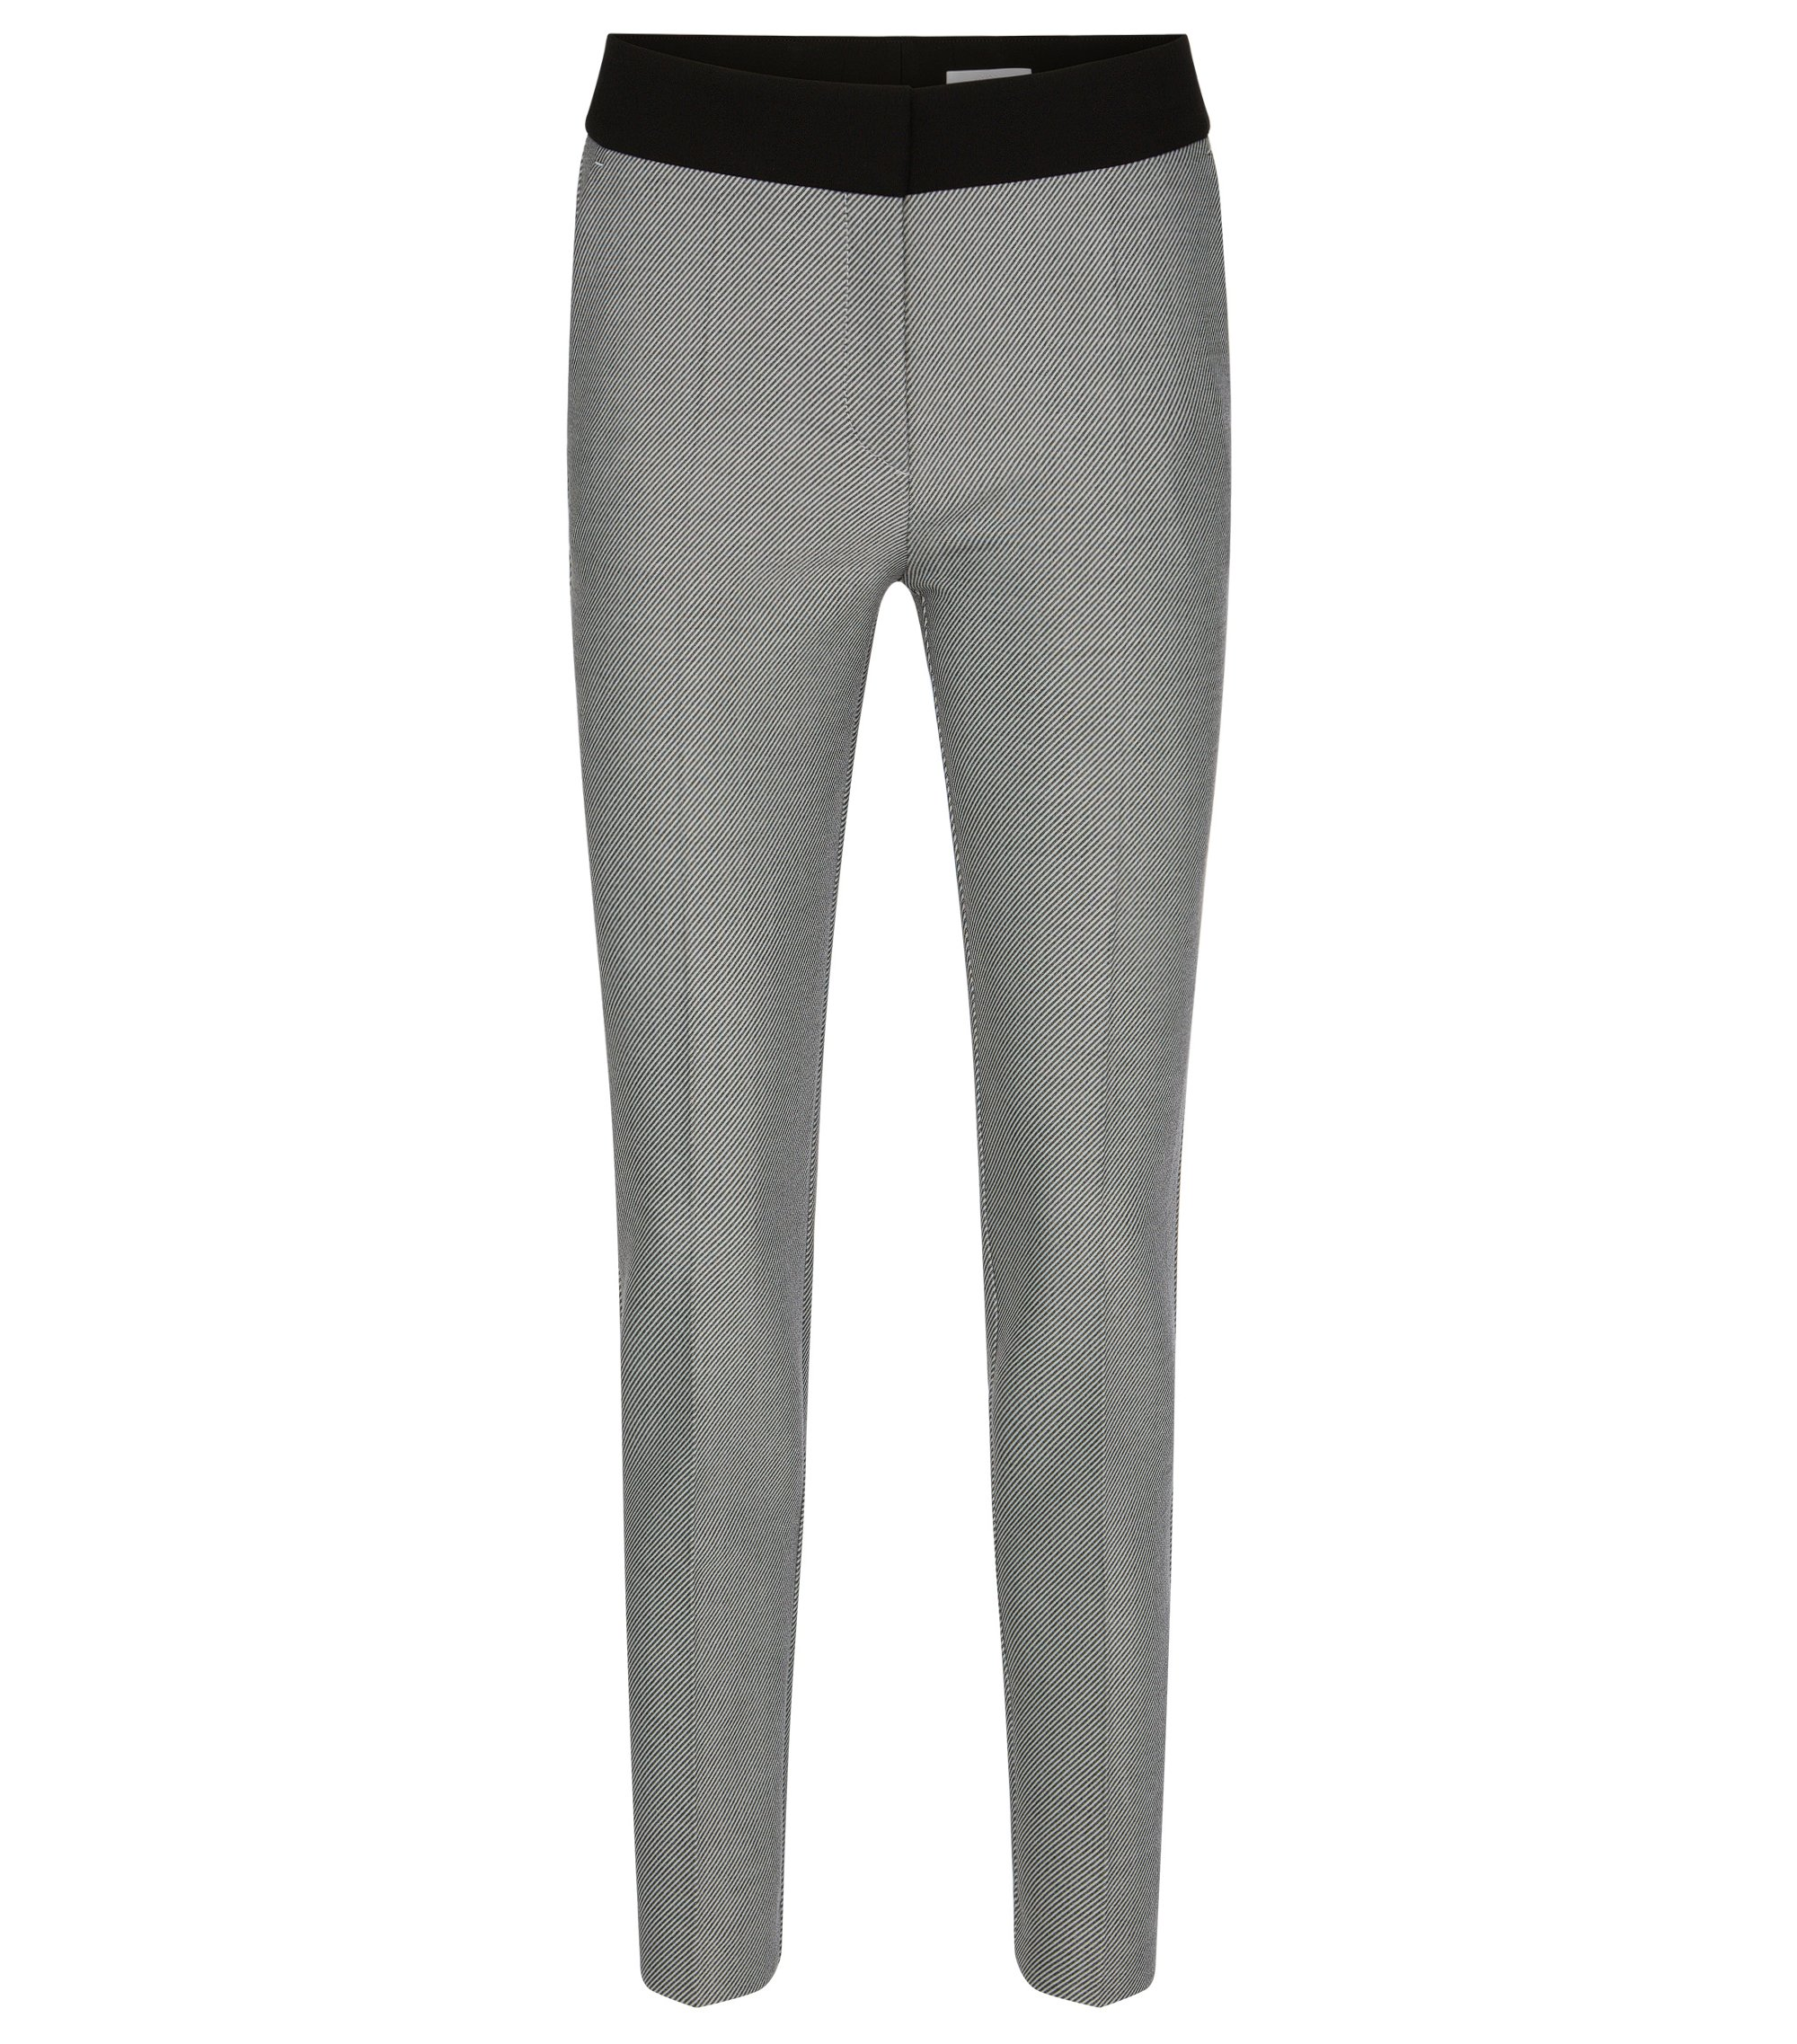 Stretch Contrast Twill Stripe Dress Pant | Acnella, Patterned